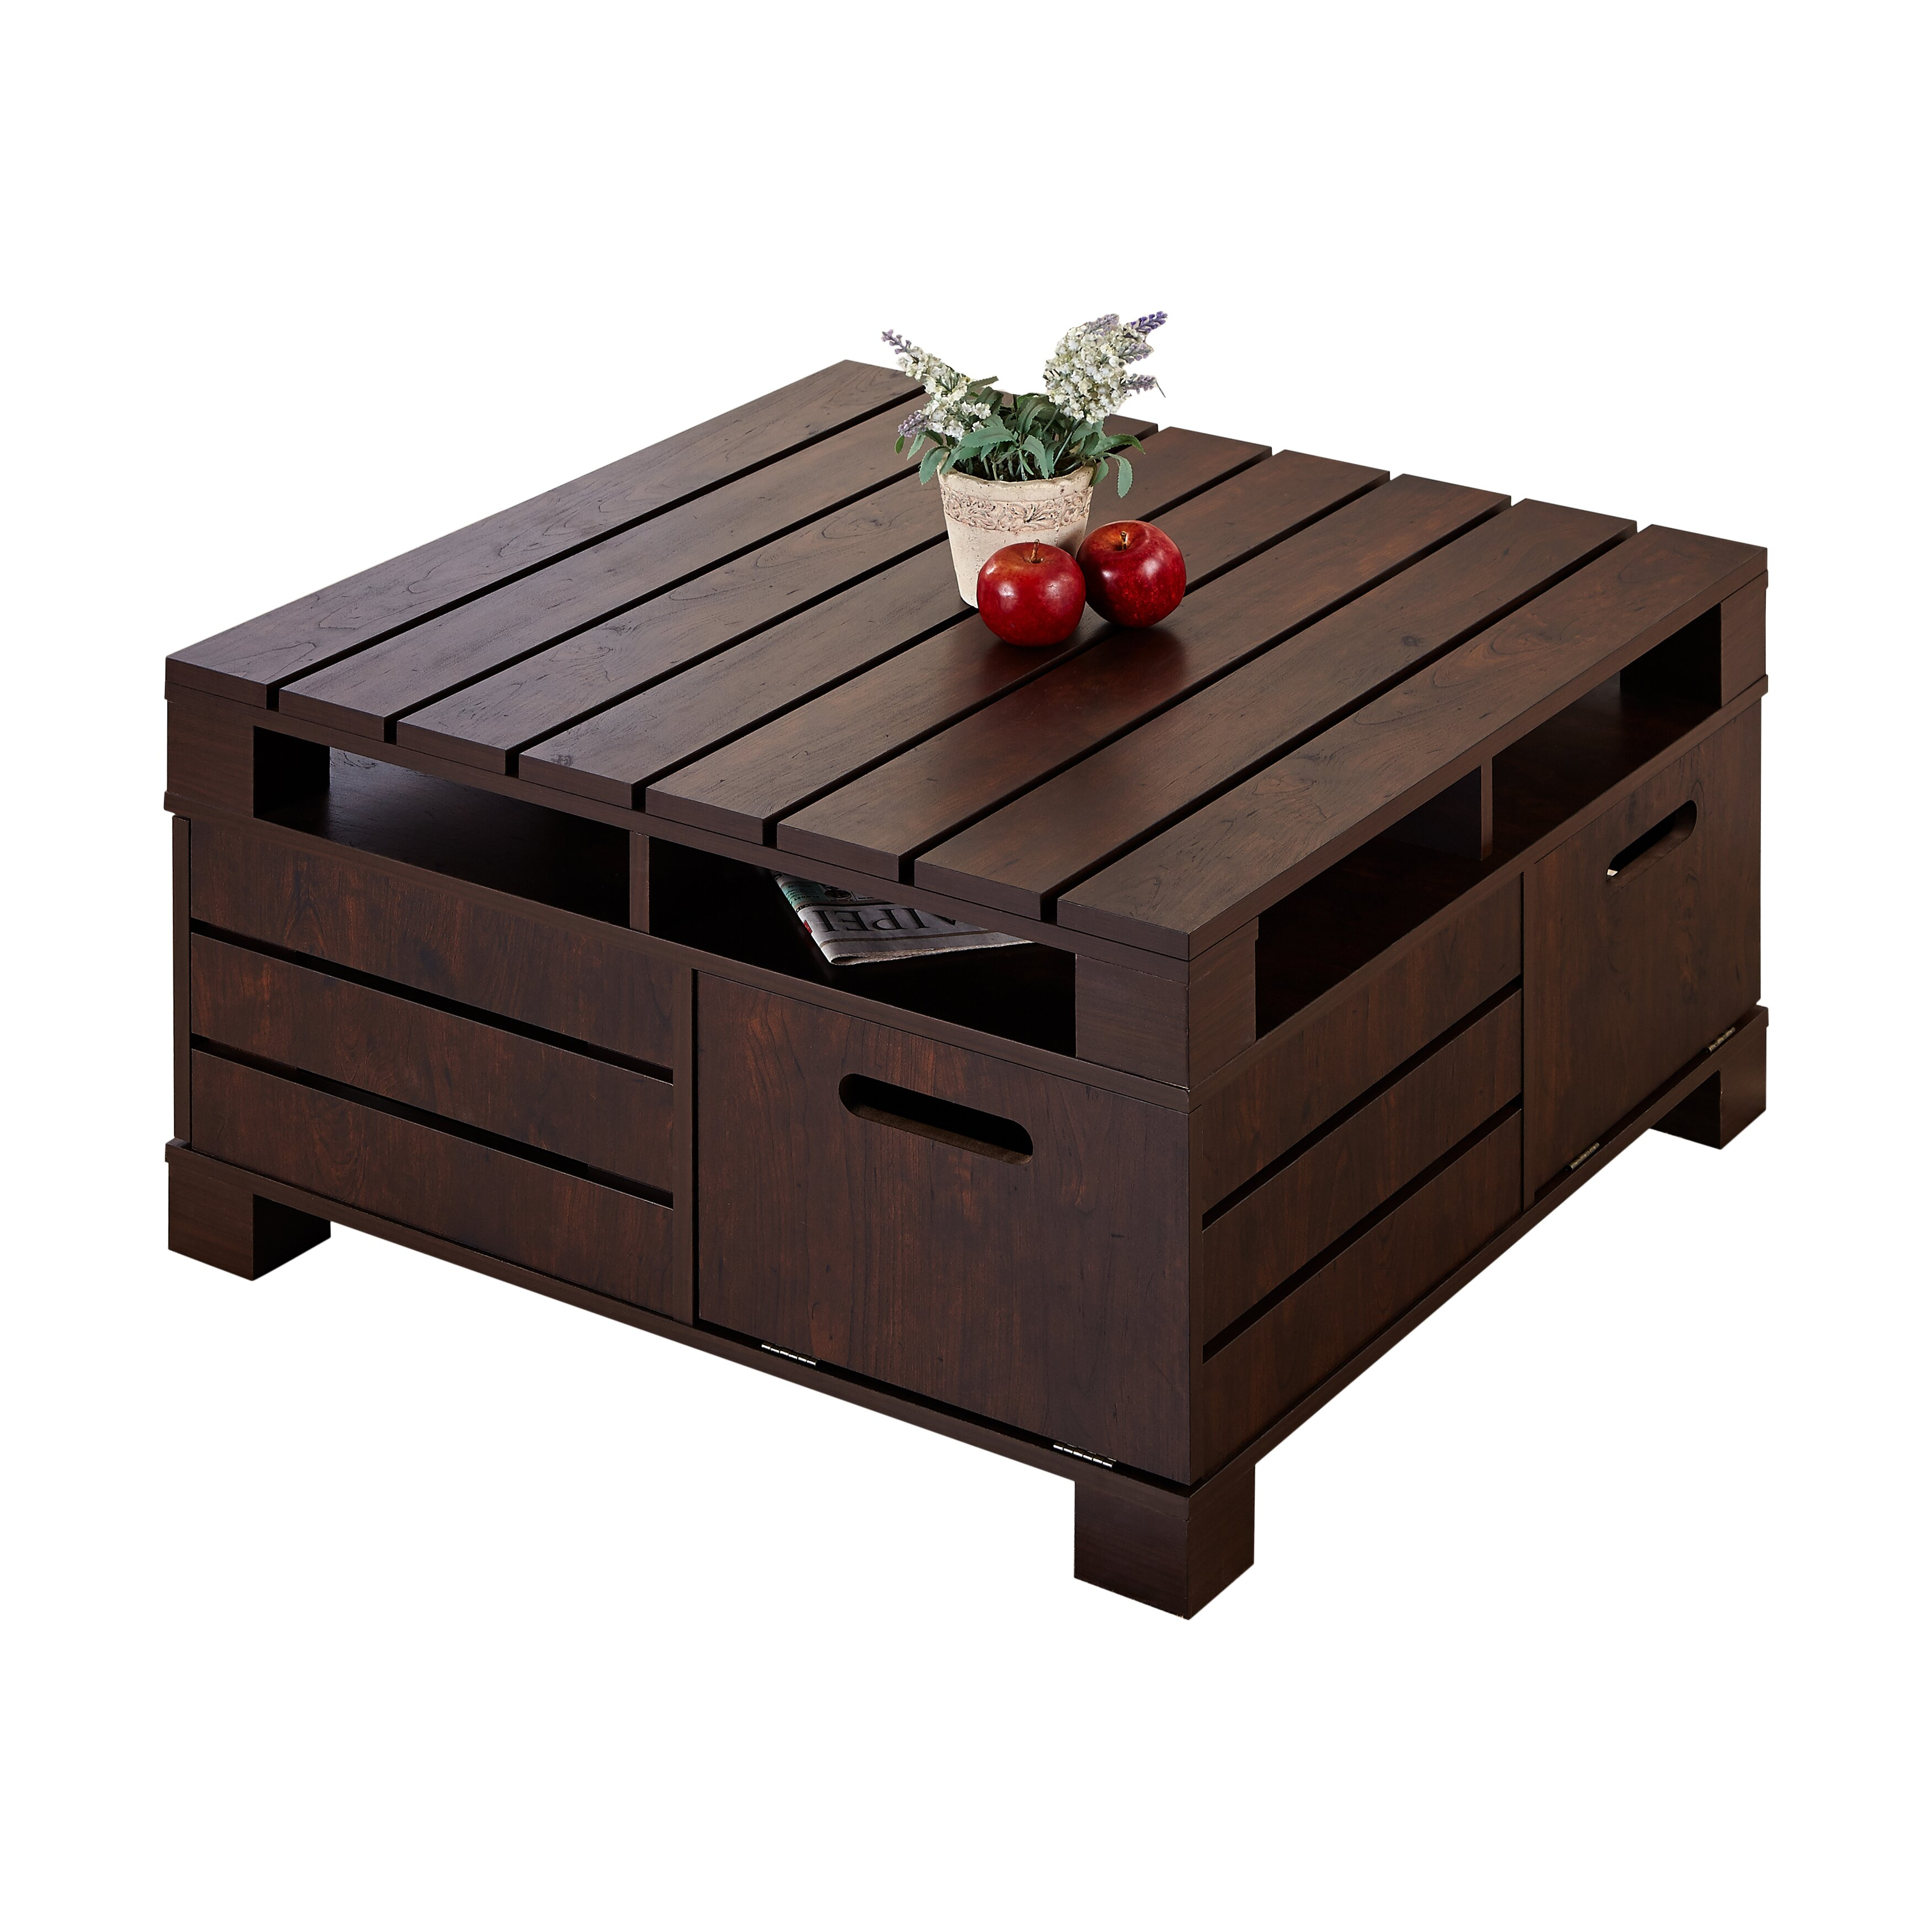 hokku designs pallet coffee table reviews wayfair. Black Bedroom Furniture Sets. Home Design Ideas